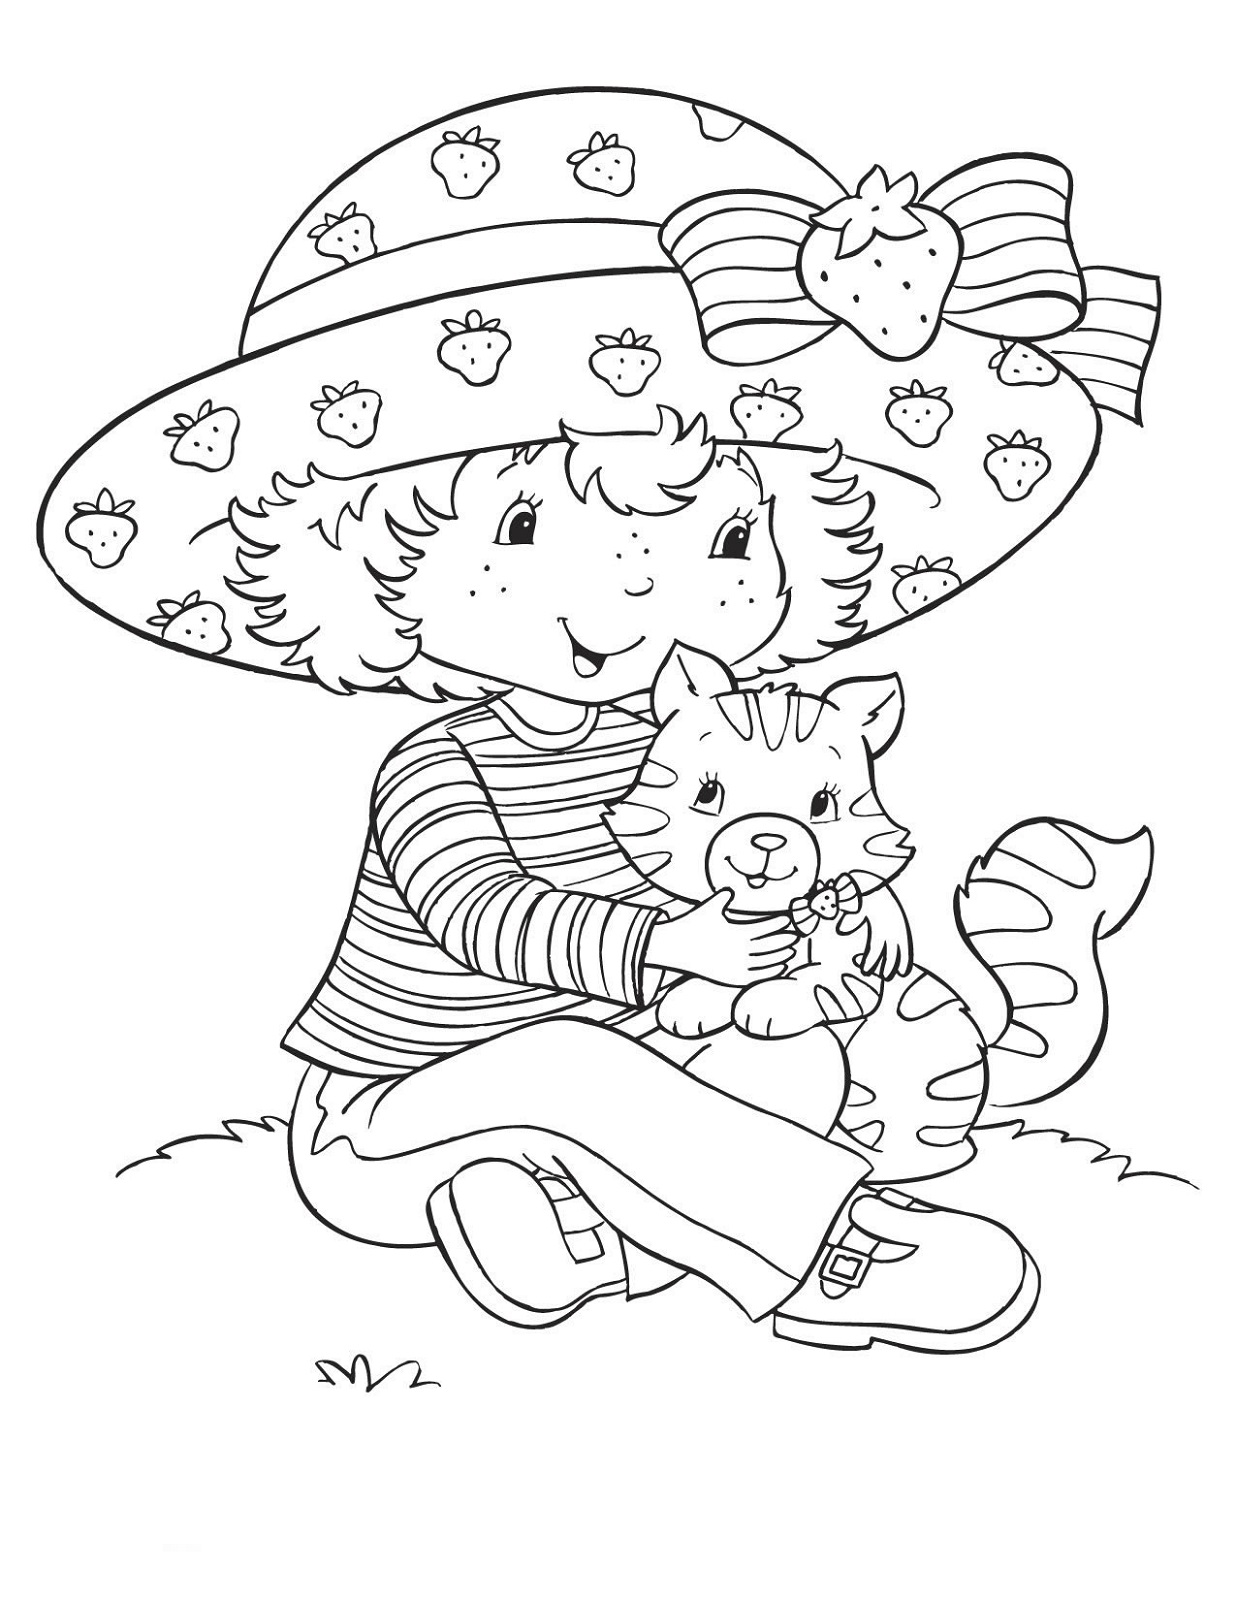 Strawberry Shortcake Coloring Pages for Kids